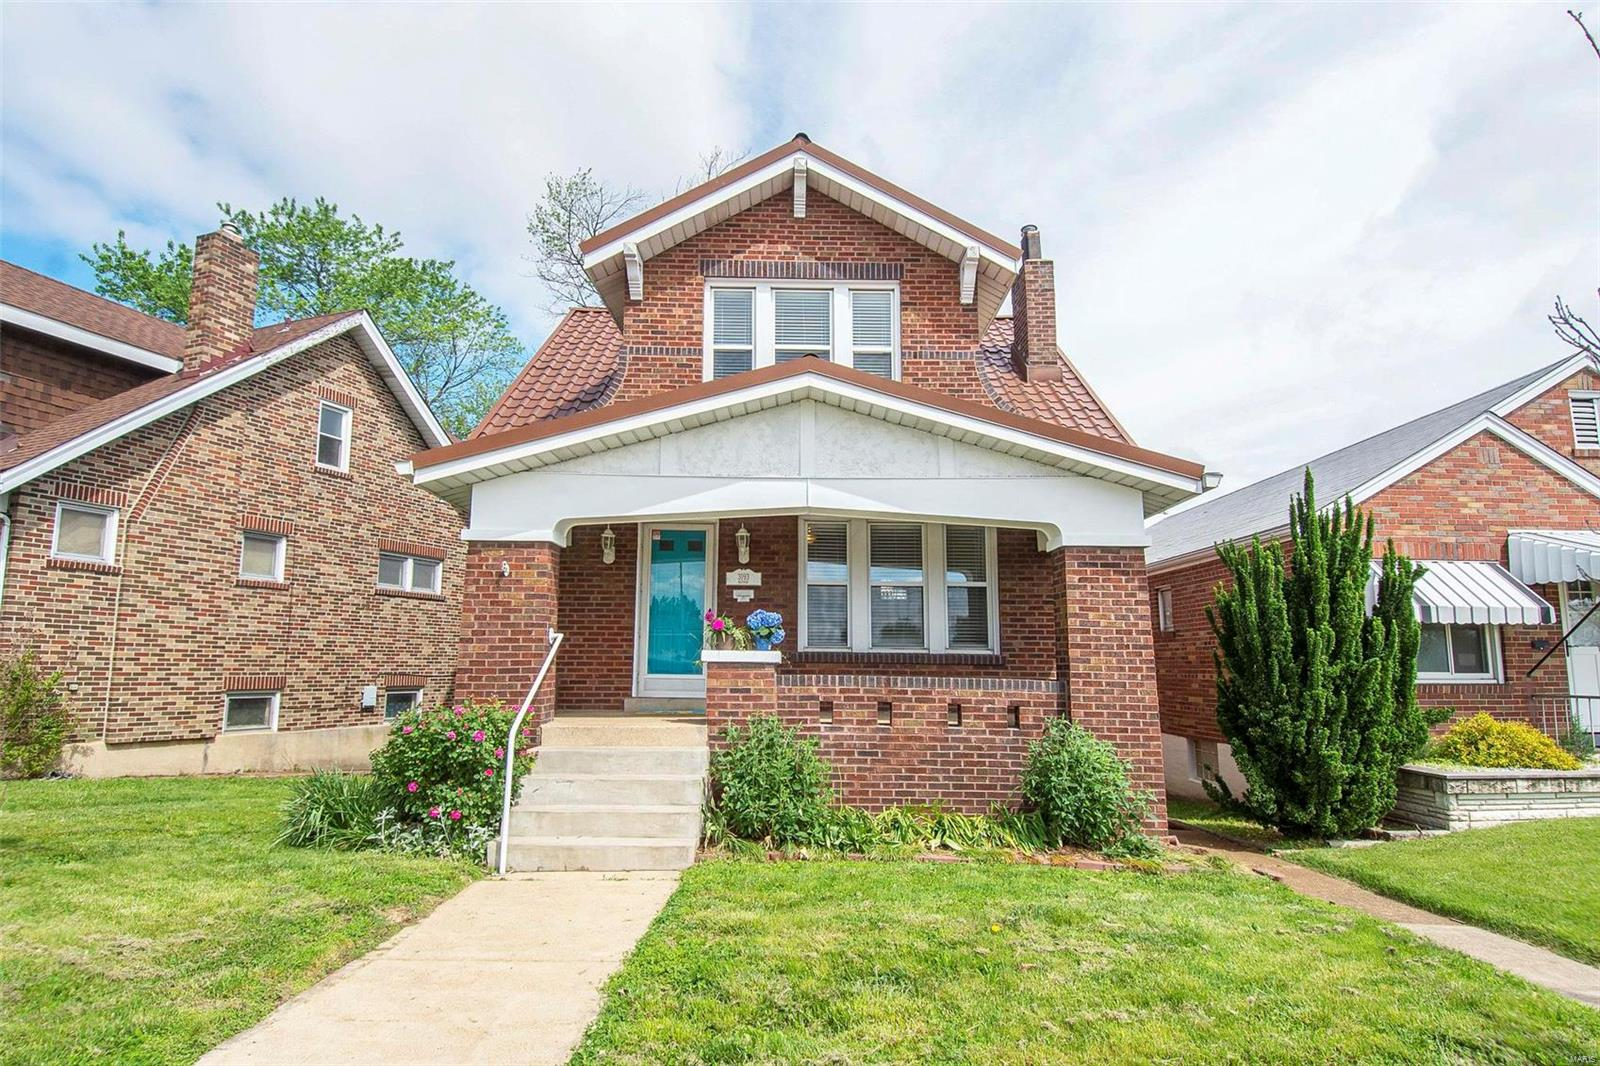 3193 Watson Property Photo - St Louis, MO real estate listing